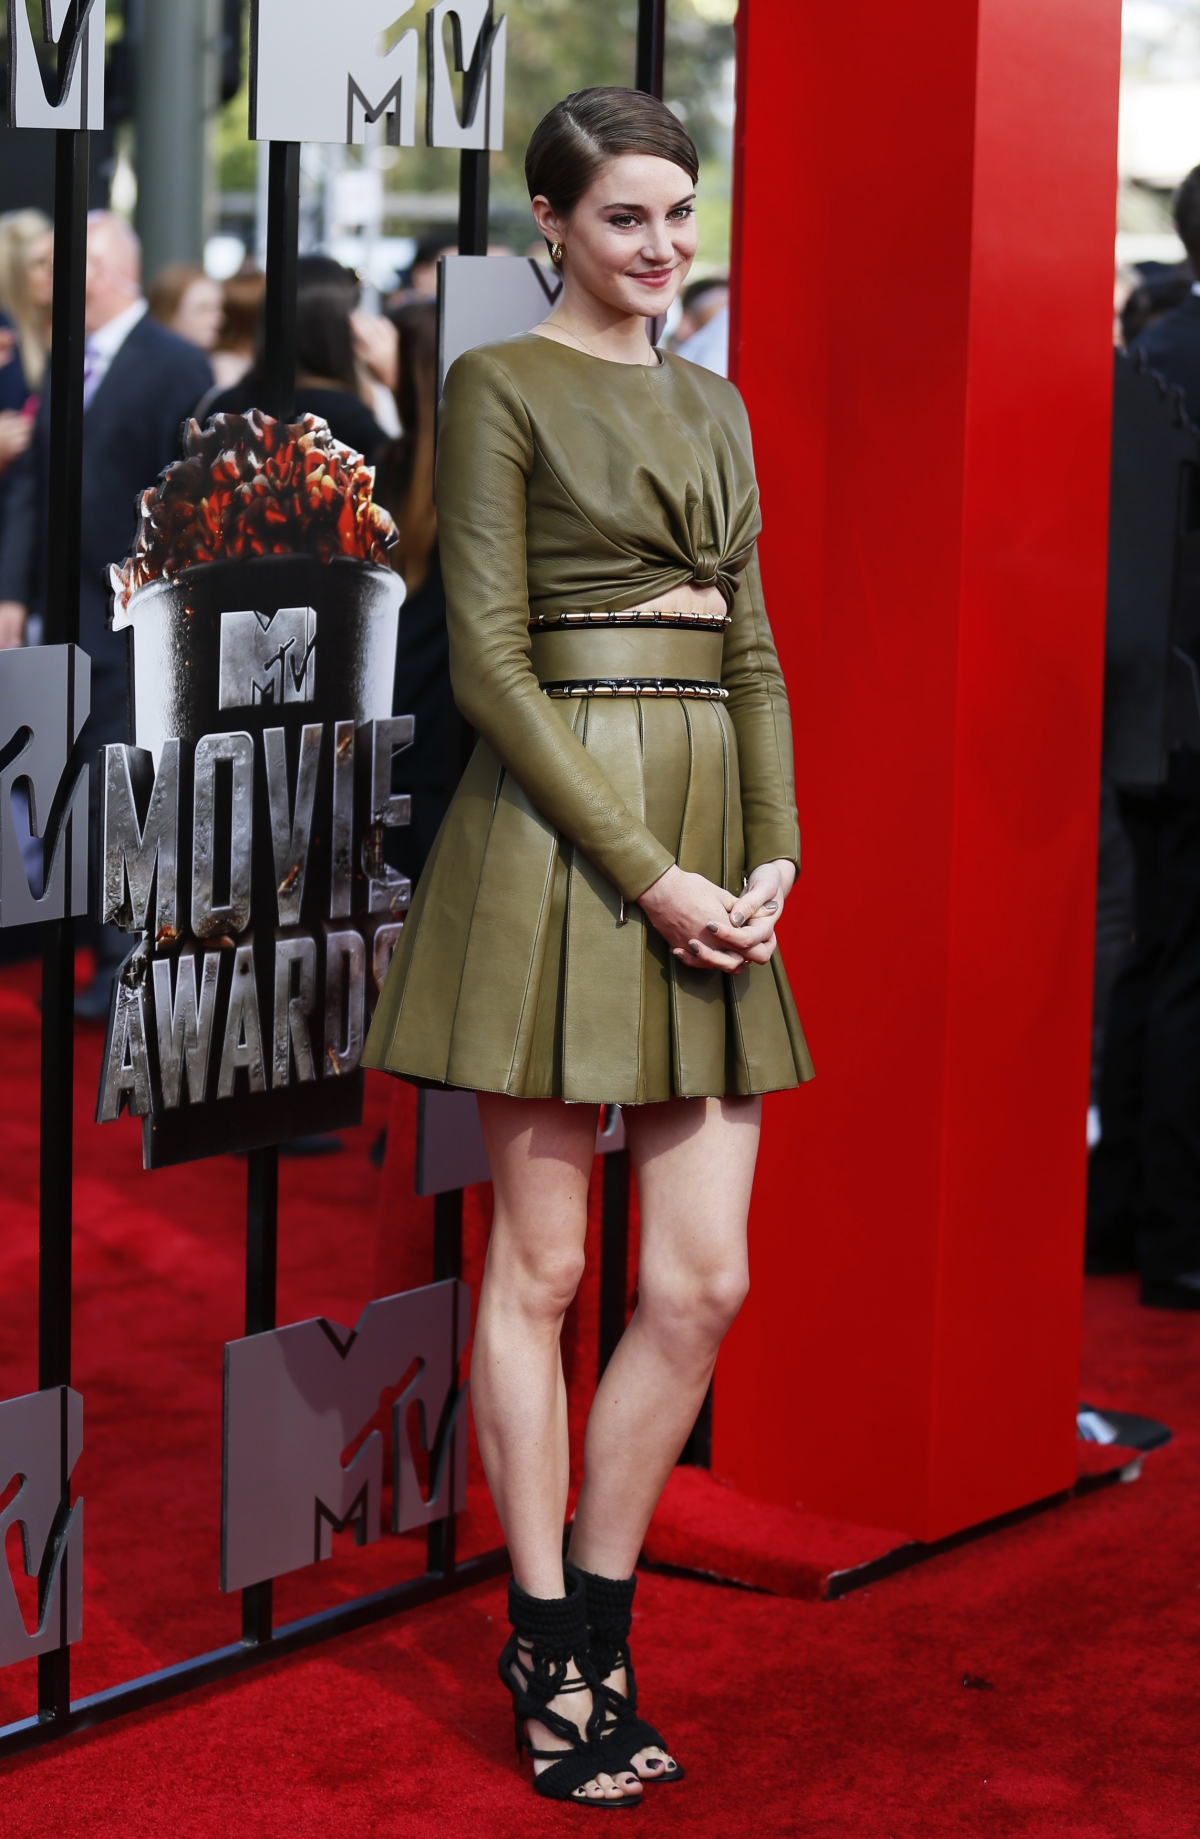 Actress Shailene Woodley arrives at the 2014 MTV Movie Awards in Los Angeles, California.